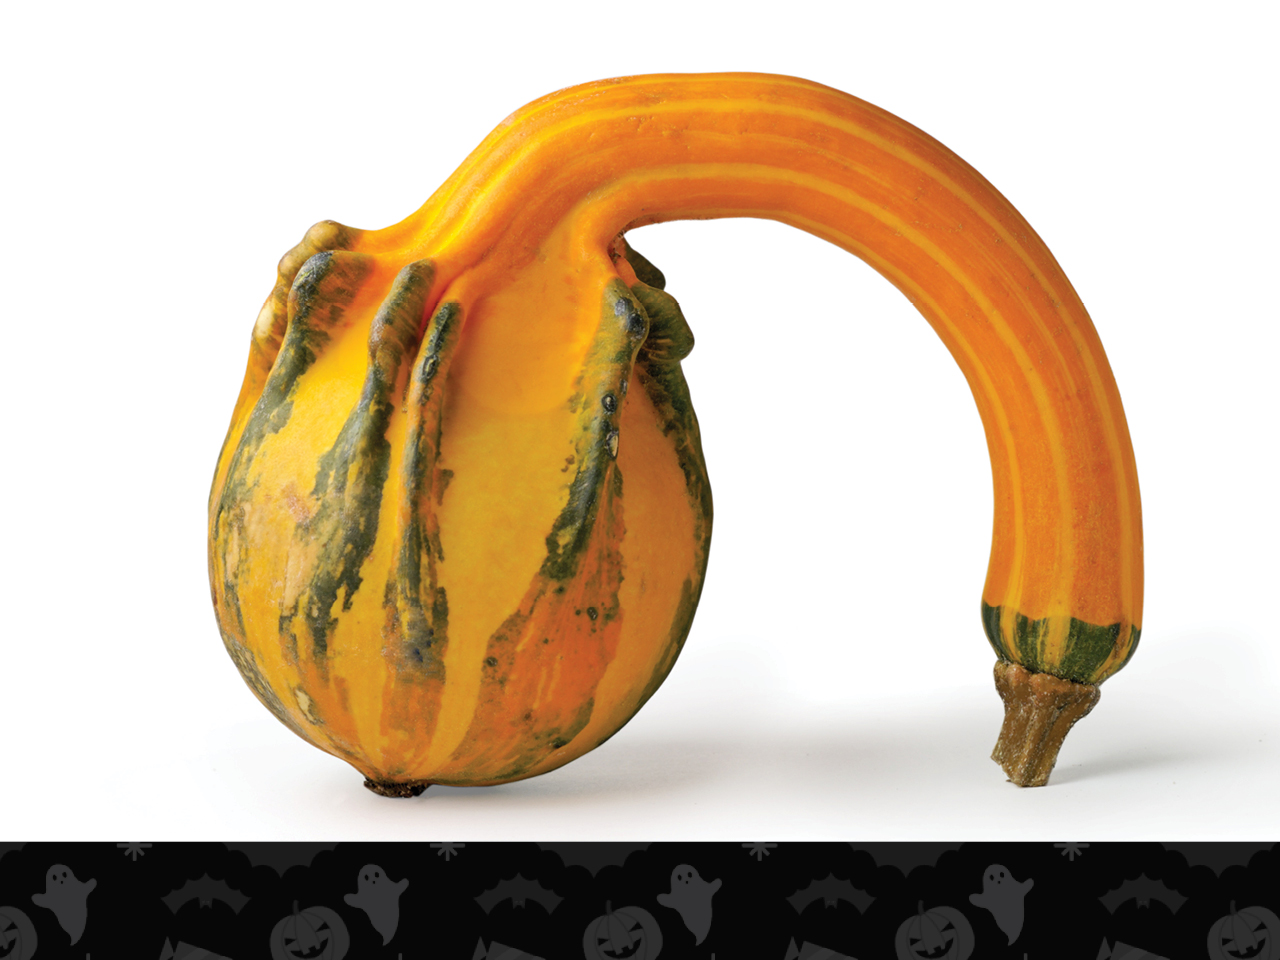 tired looking gourd with a limp stem